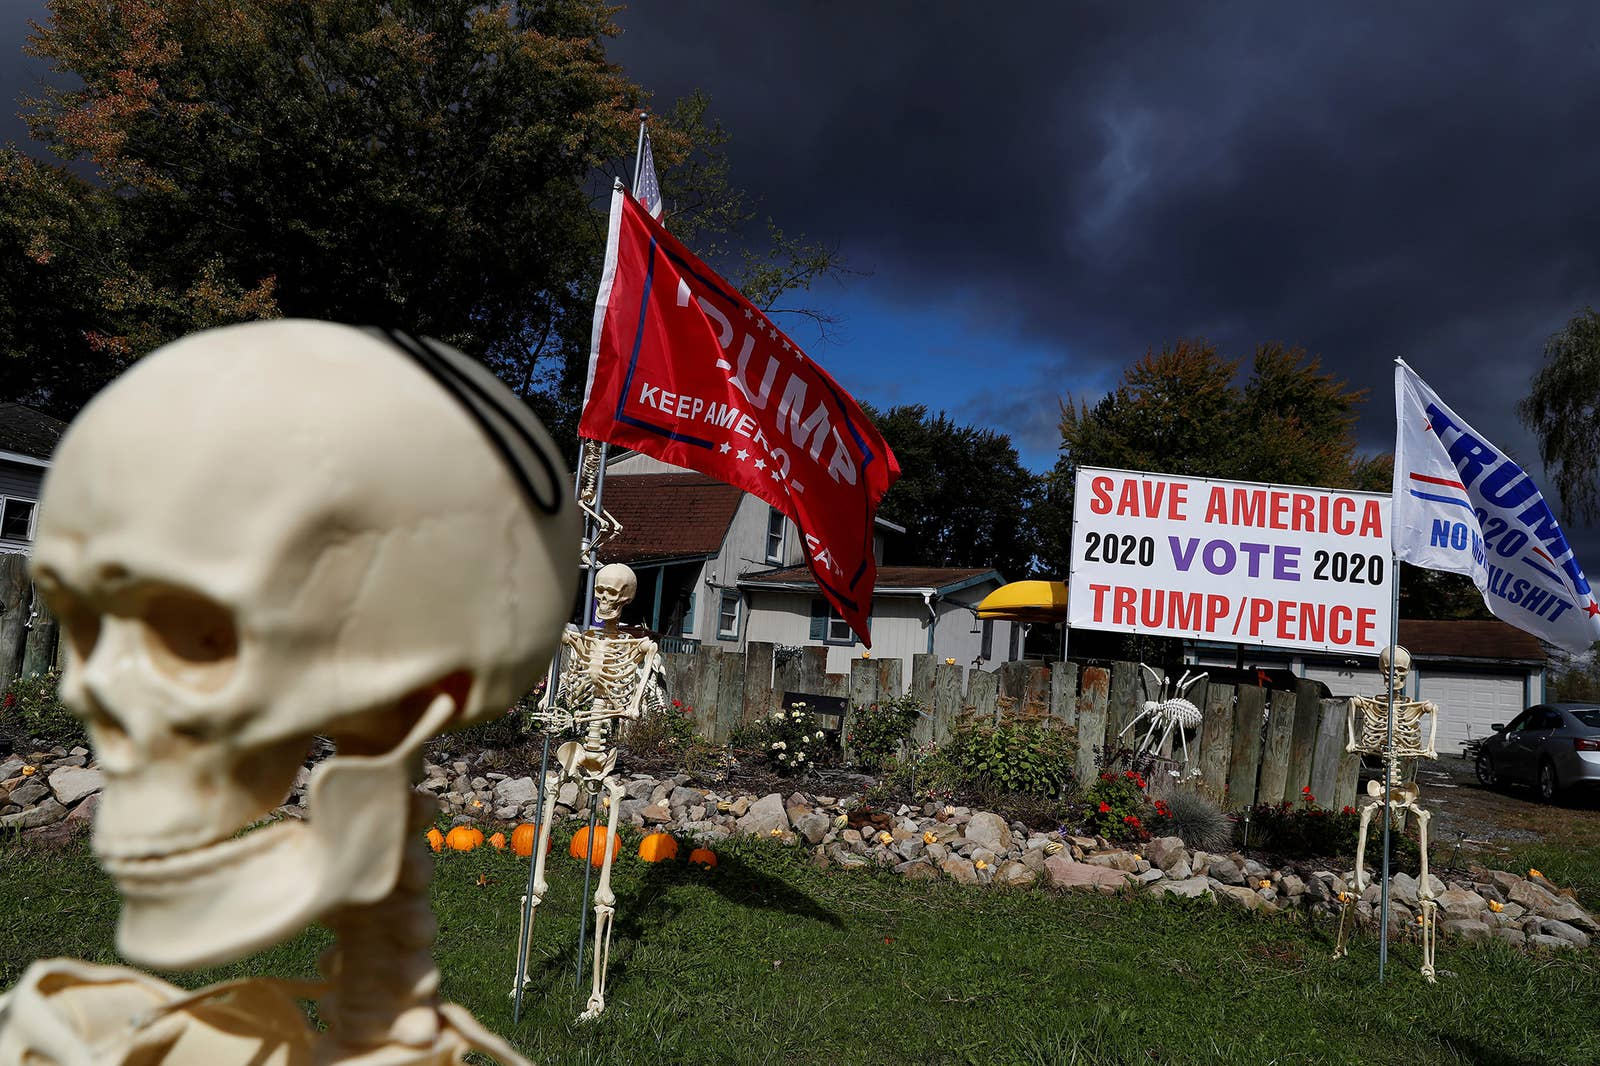 """A skeleton holds a """"Trump: Keep America Great"""" flag near a sign that reads """"Save America, vote Trump/Pence"""""""